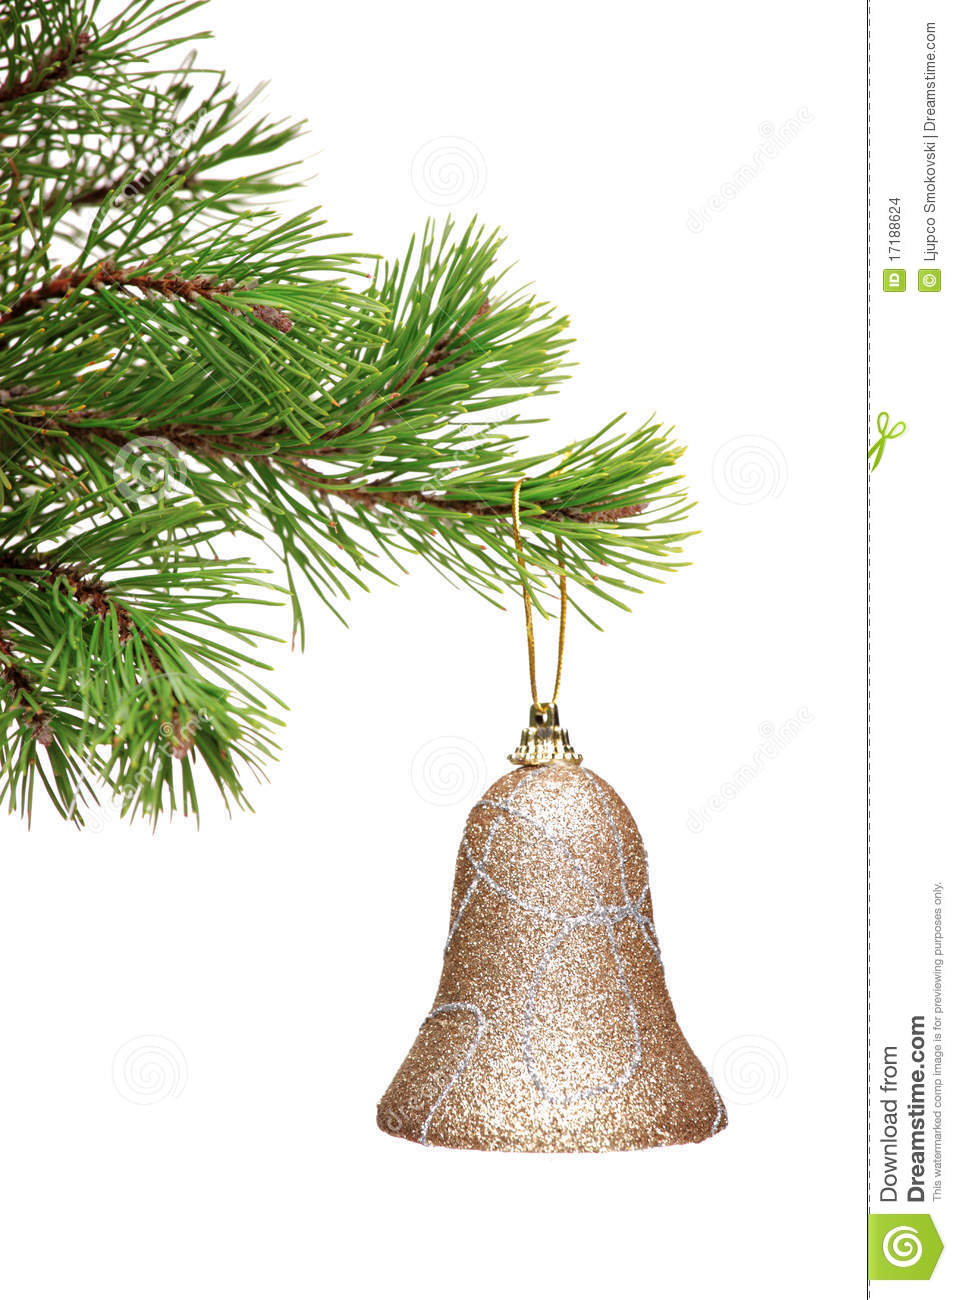 Gold bell hanging on a green christmas tree branch stock